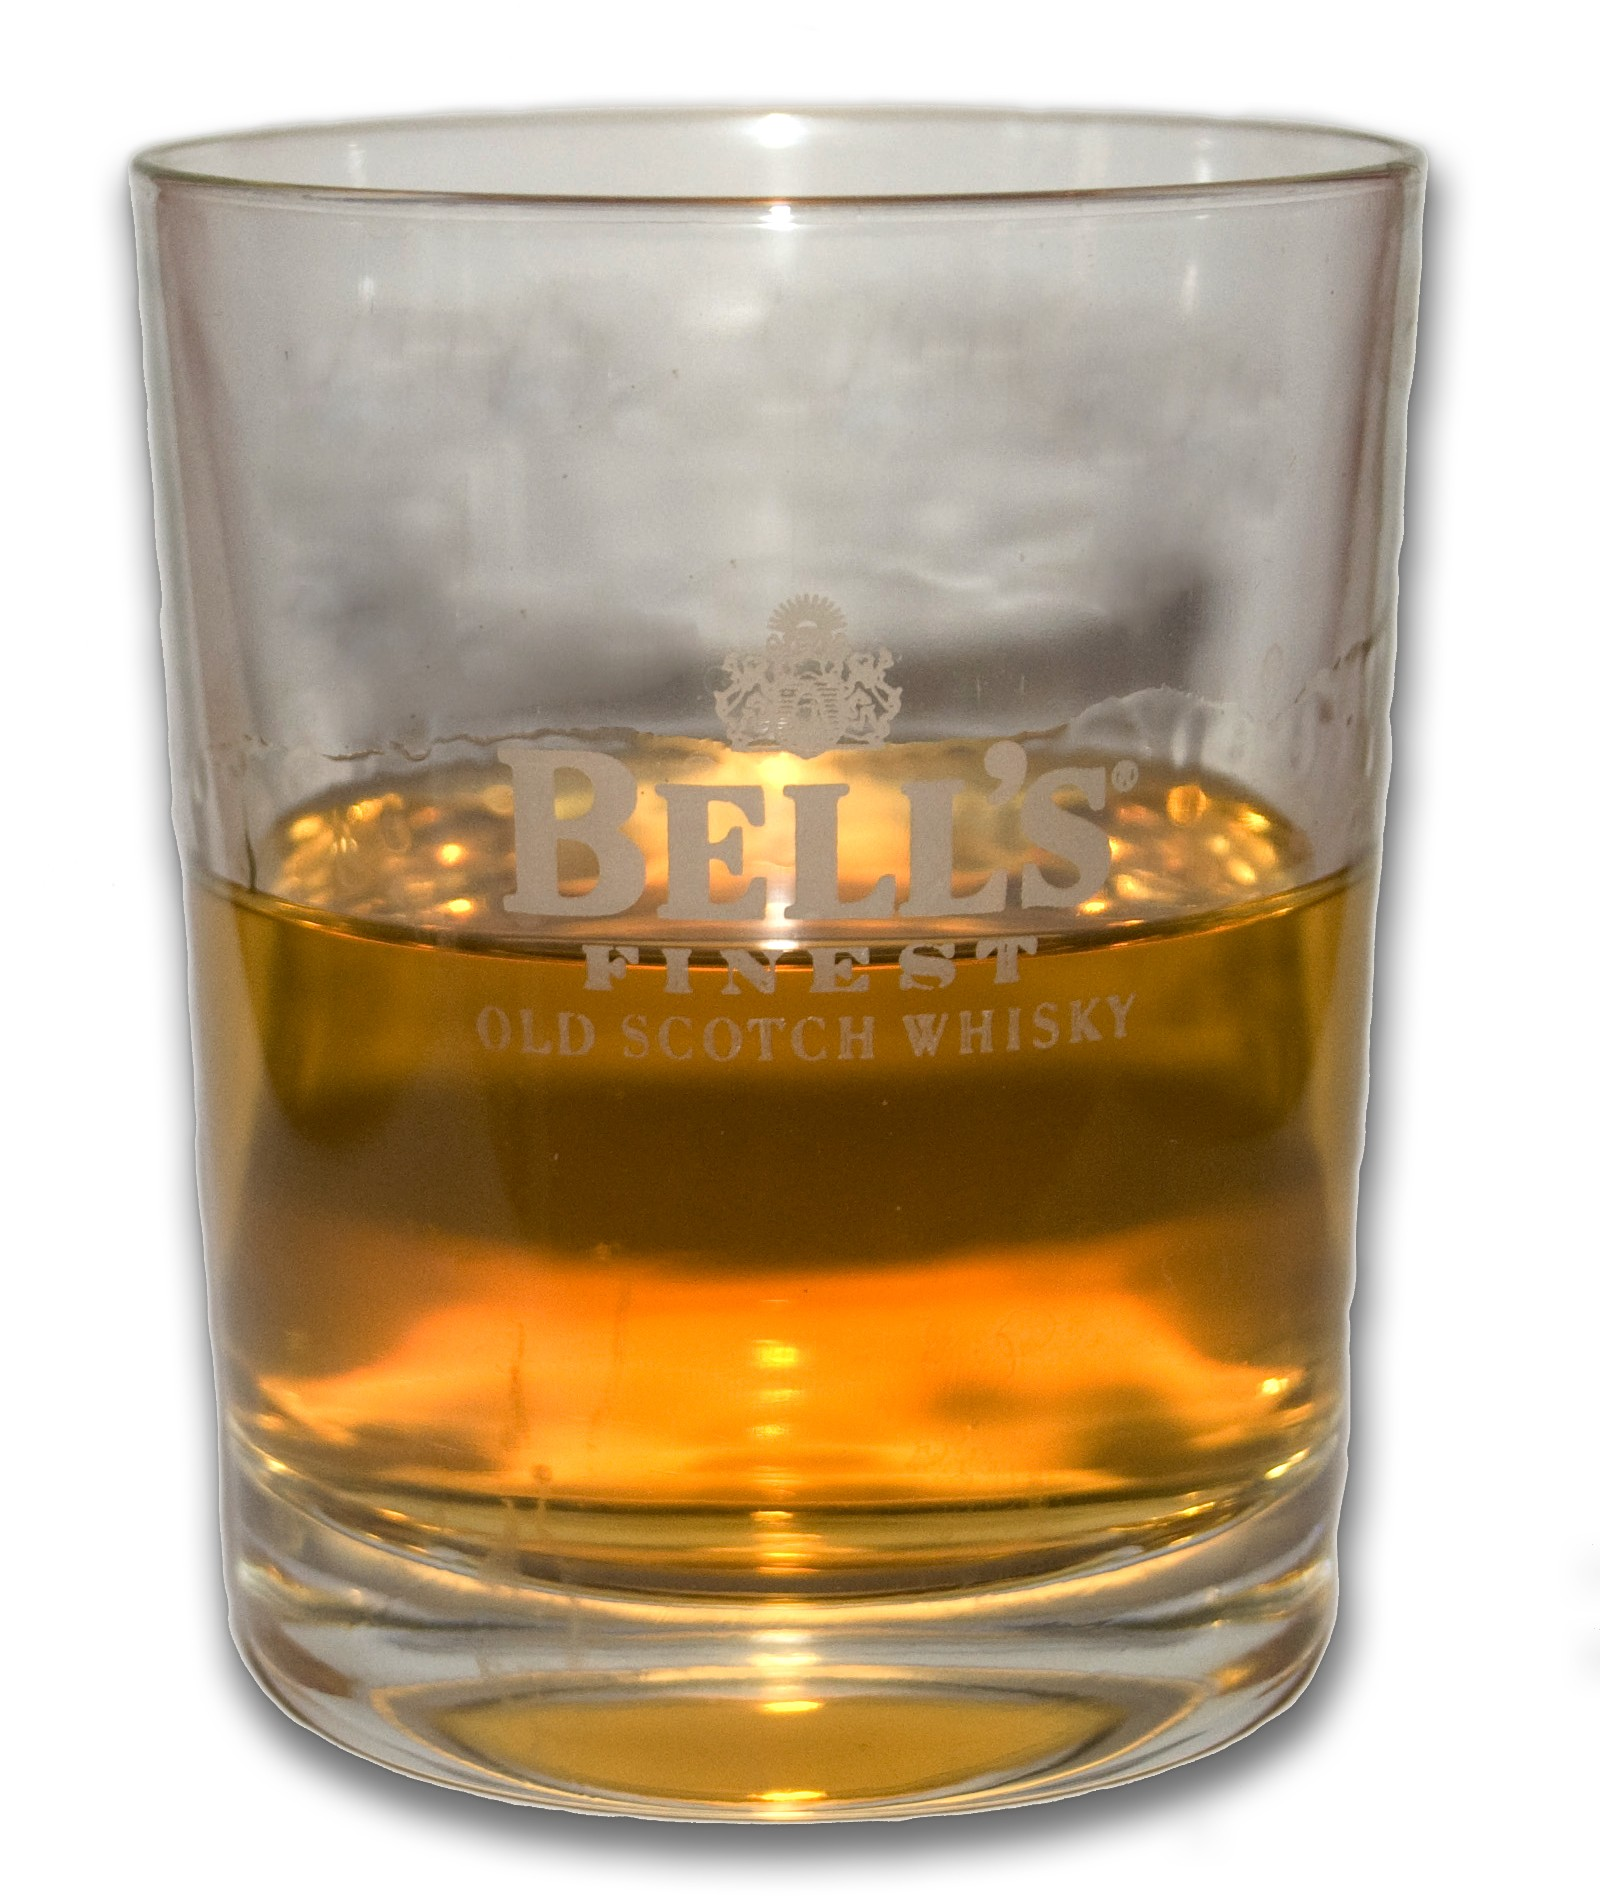 Glass of Bell s